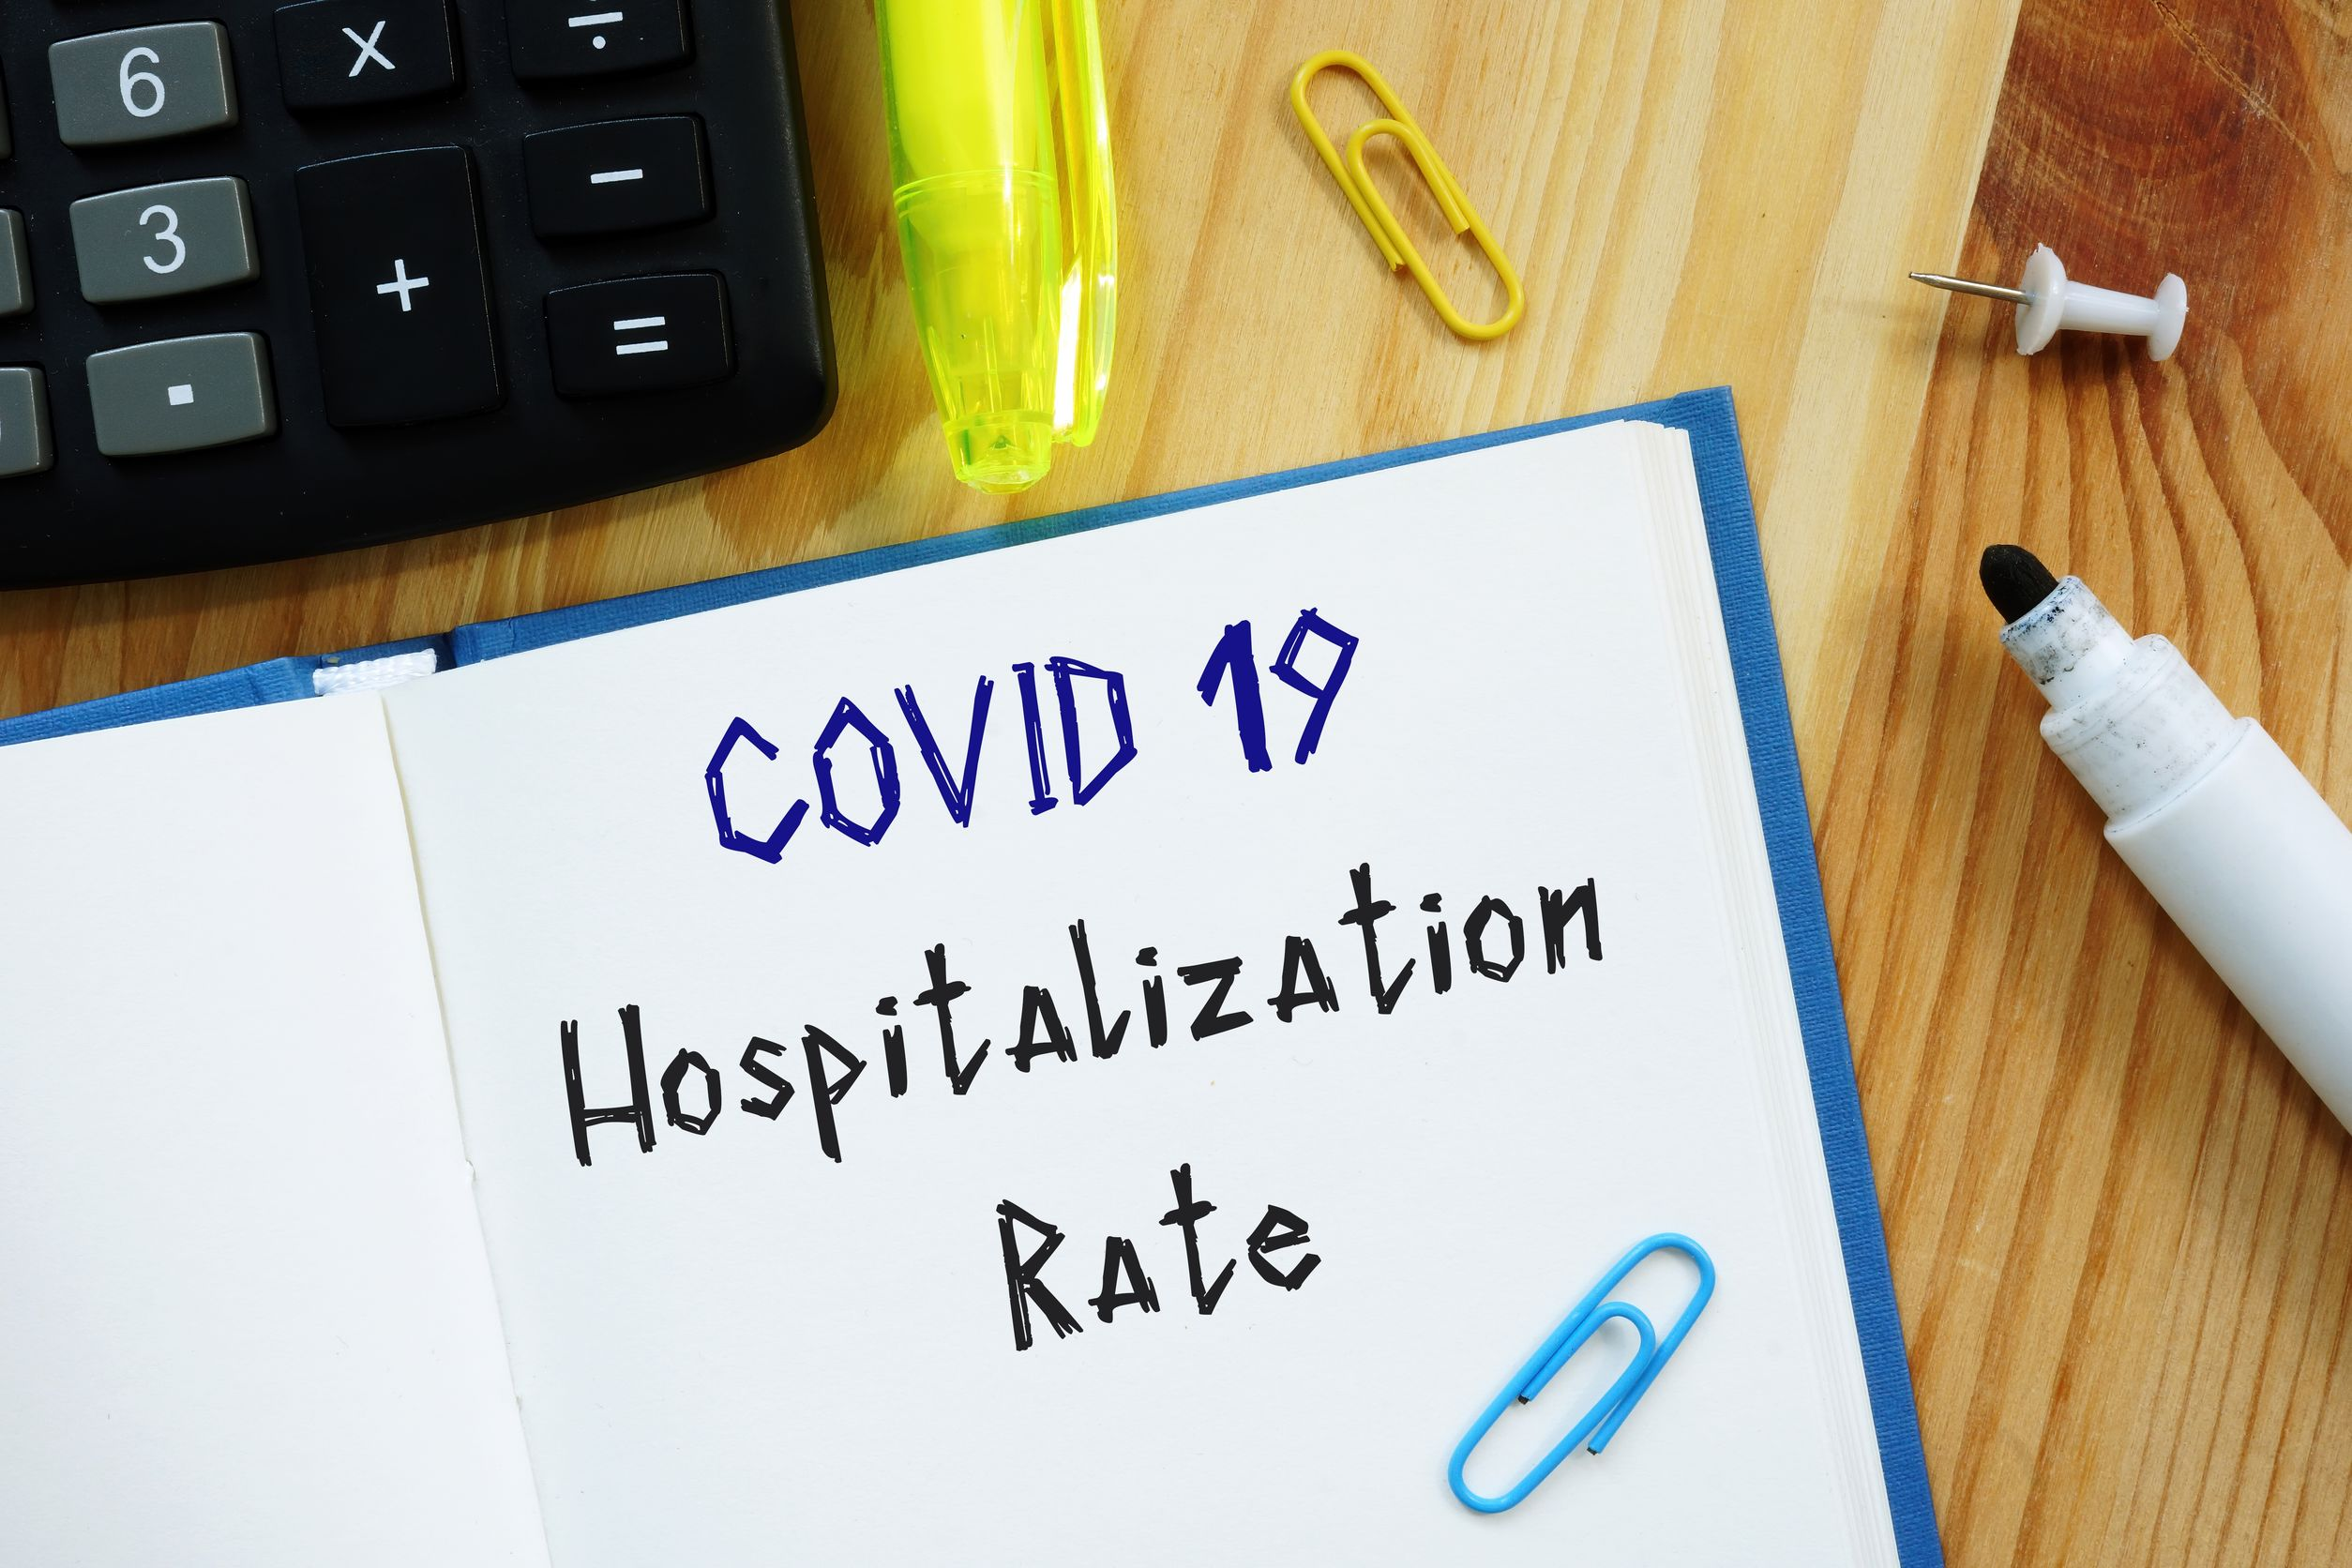 Conceptual photo about covid hospitalization rate with handwritten phrase.